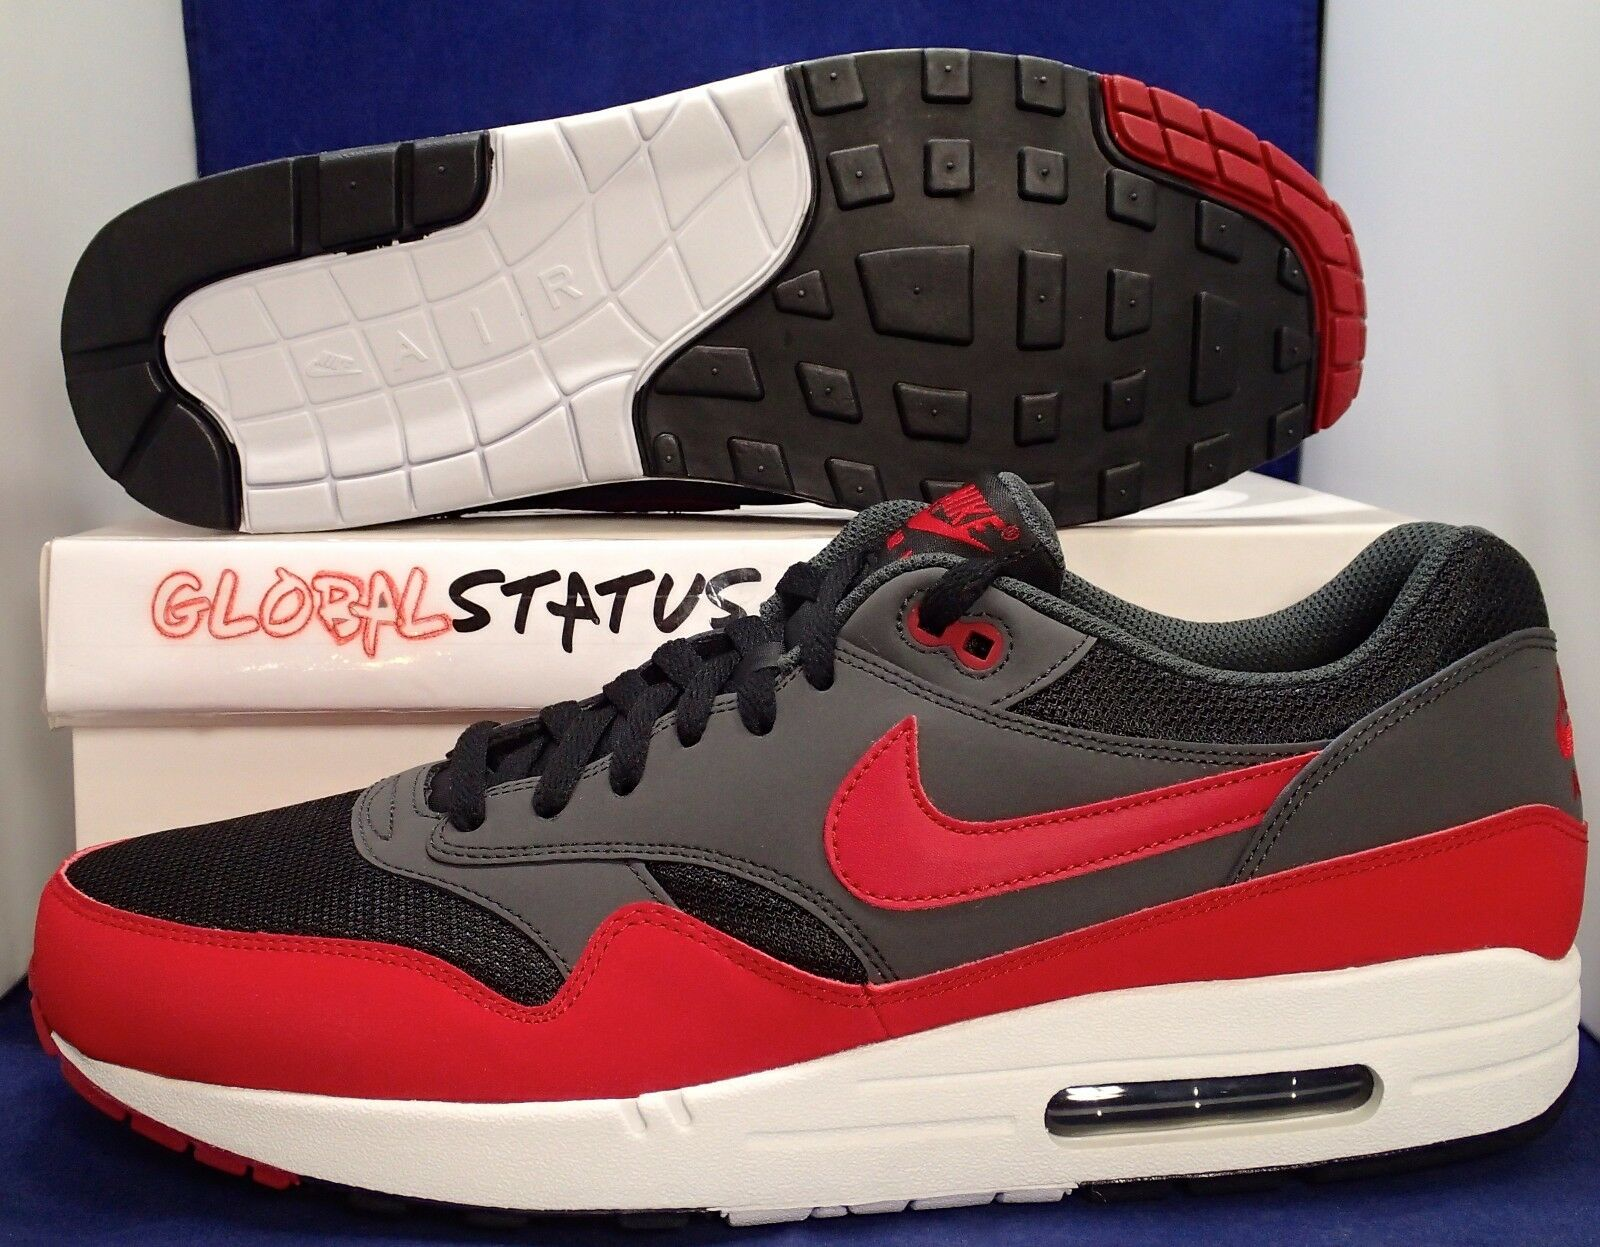 2012 NIKE MENS AIR MAX 1 ESSENTIAL  BRED  BLACK GYM RED SHOES 537383 061 SIZE 13